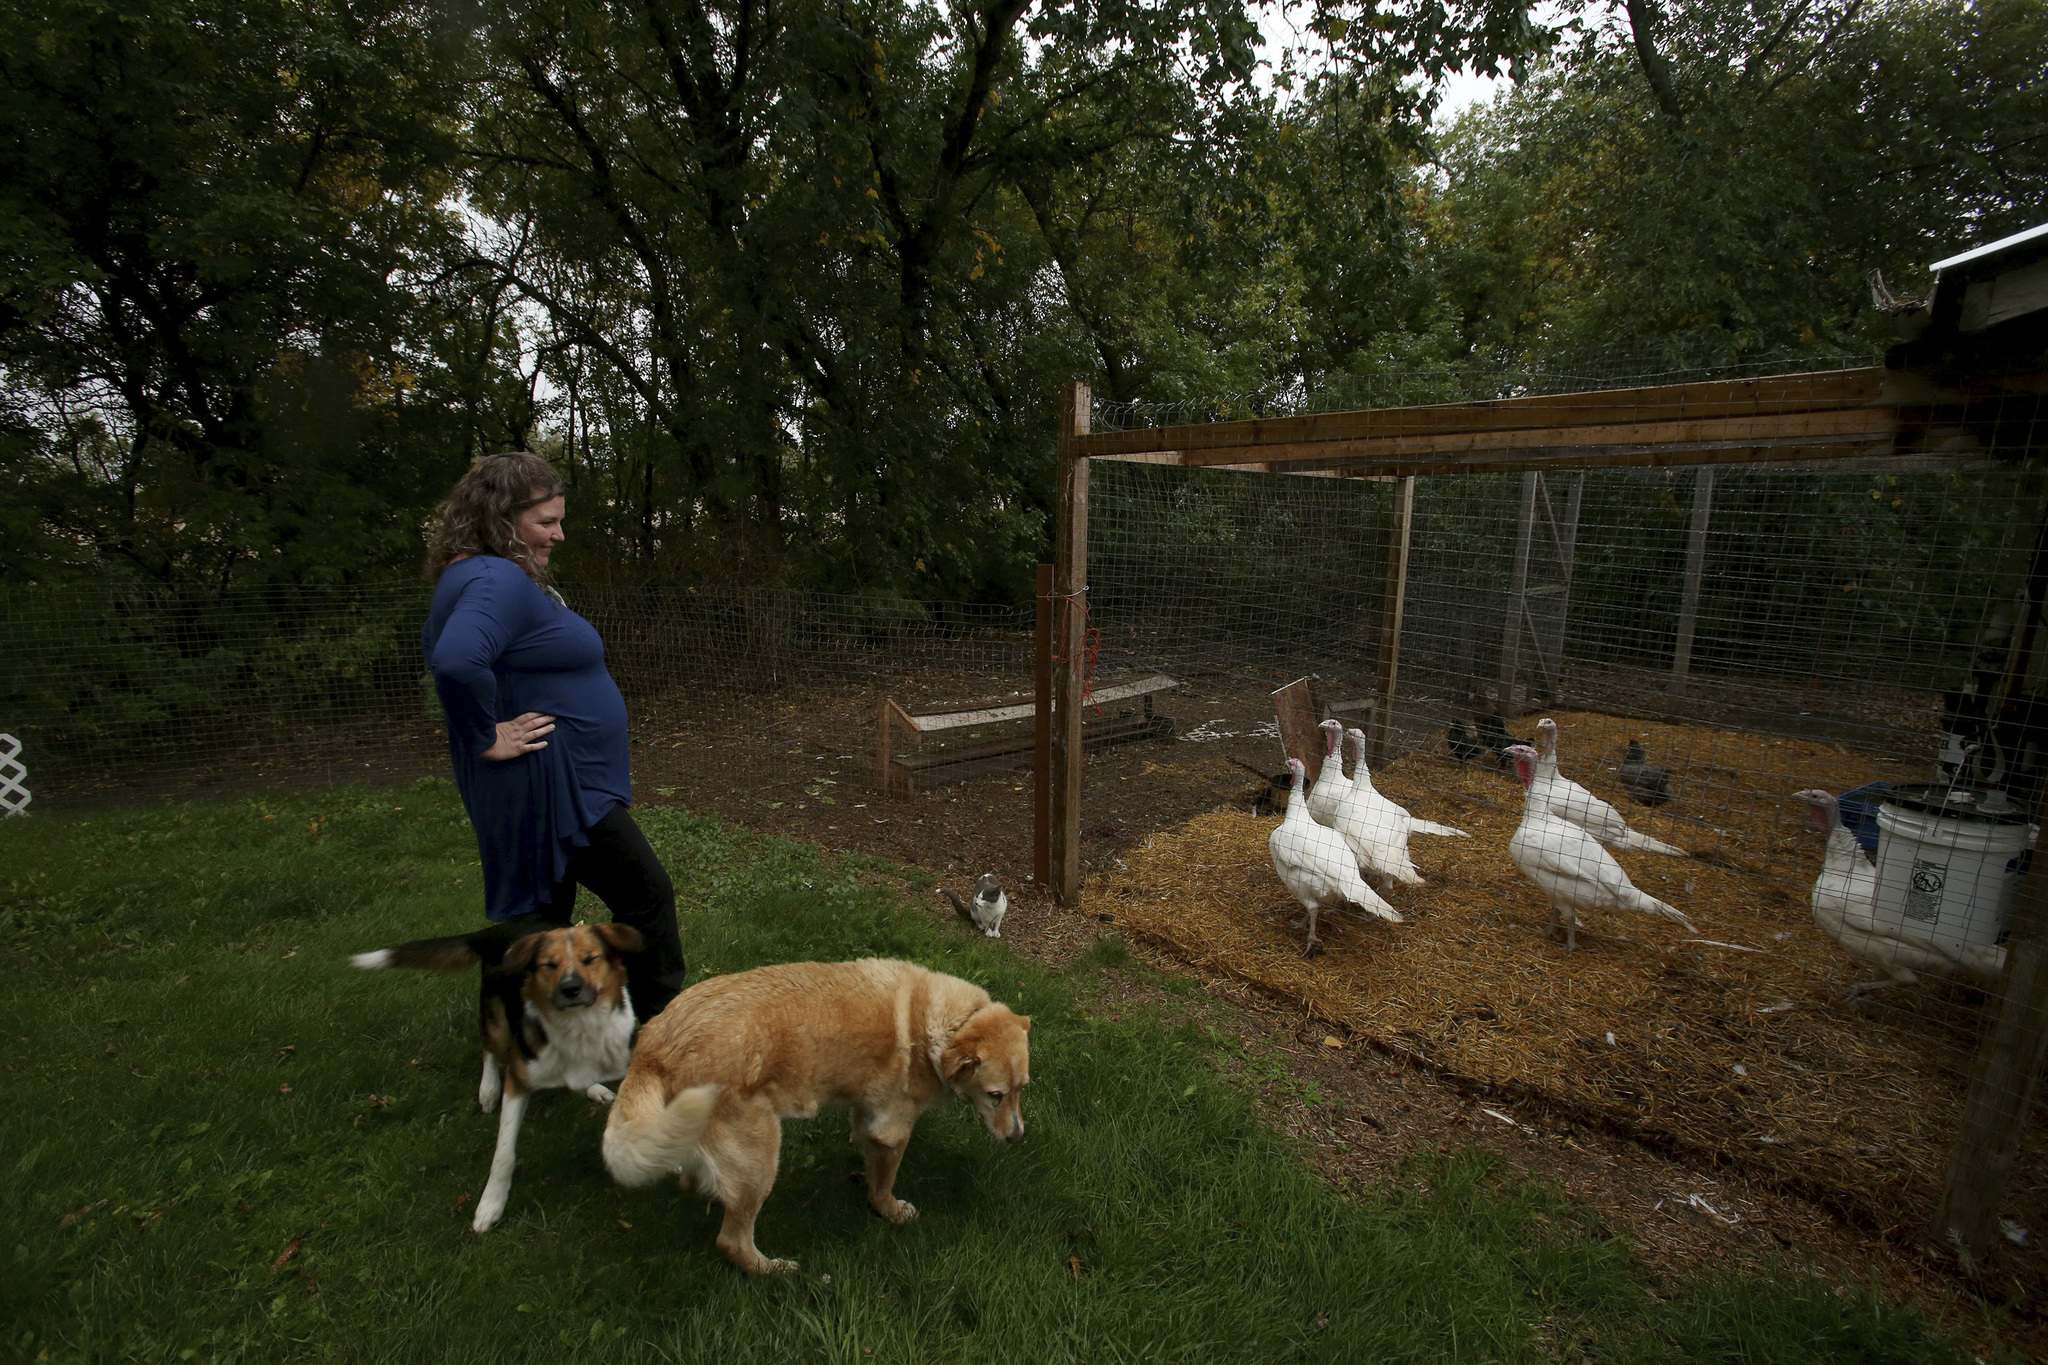 SHANNON VANRAES / WINNIPEG FREE PRESS</p><p>Mary-Jo Thiessen spends time with some of the animals on the family's hobby farm near Elie.</p>